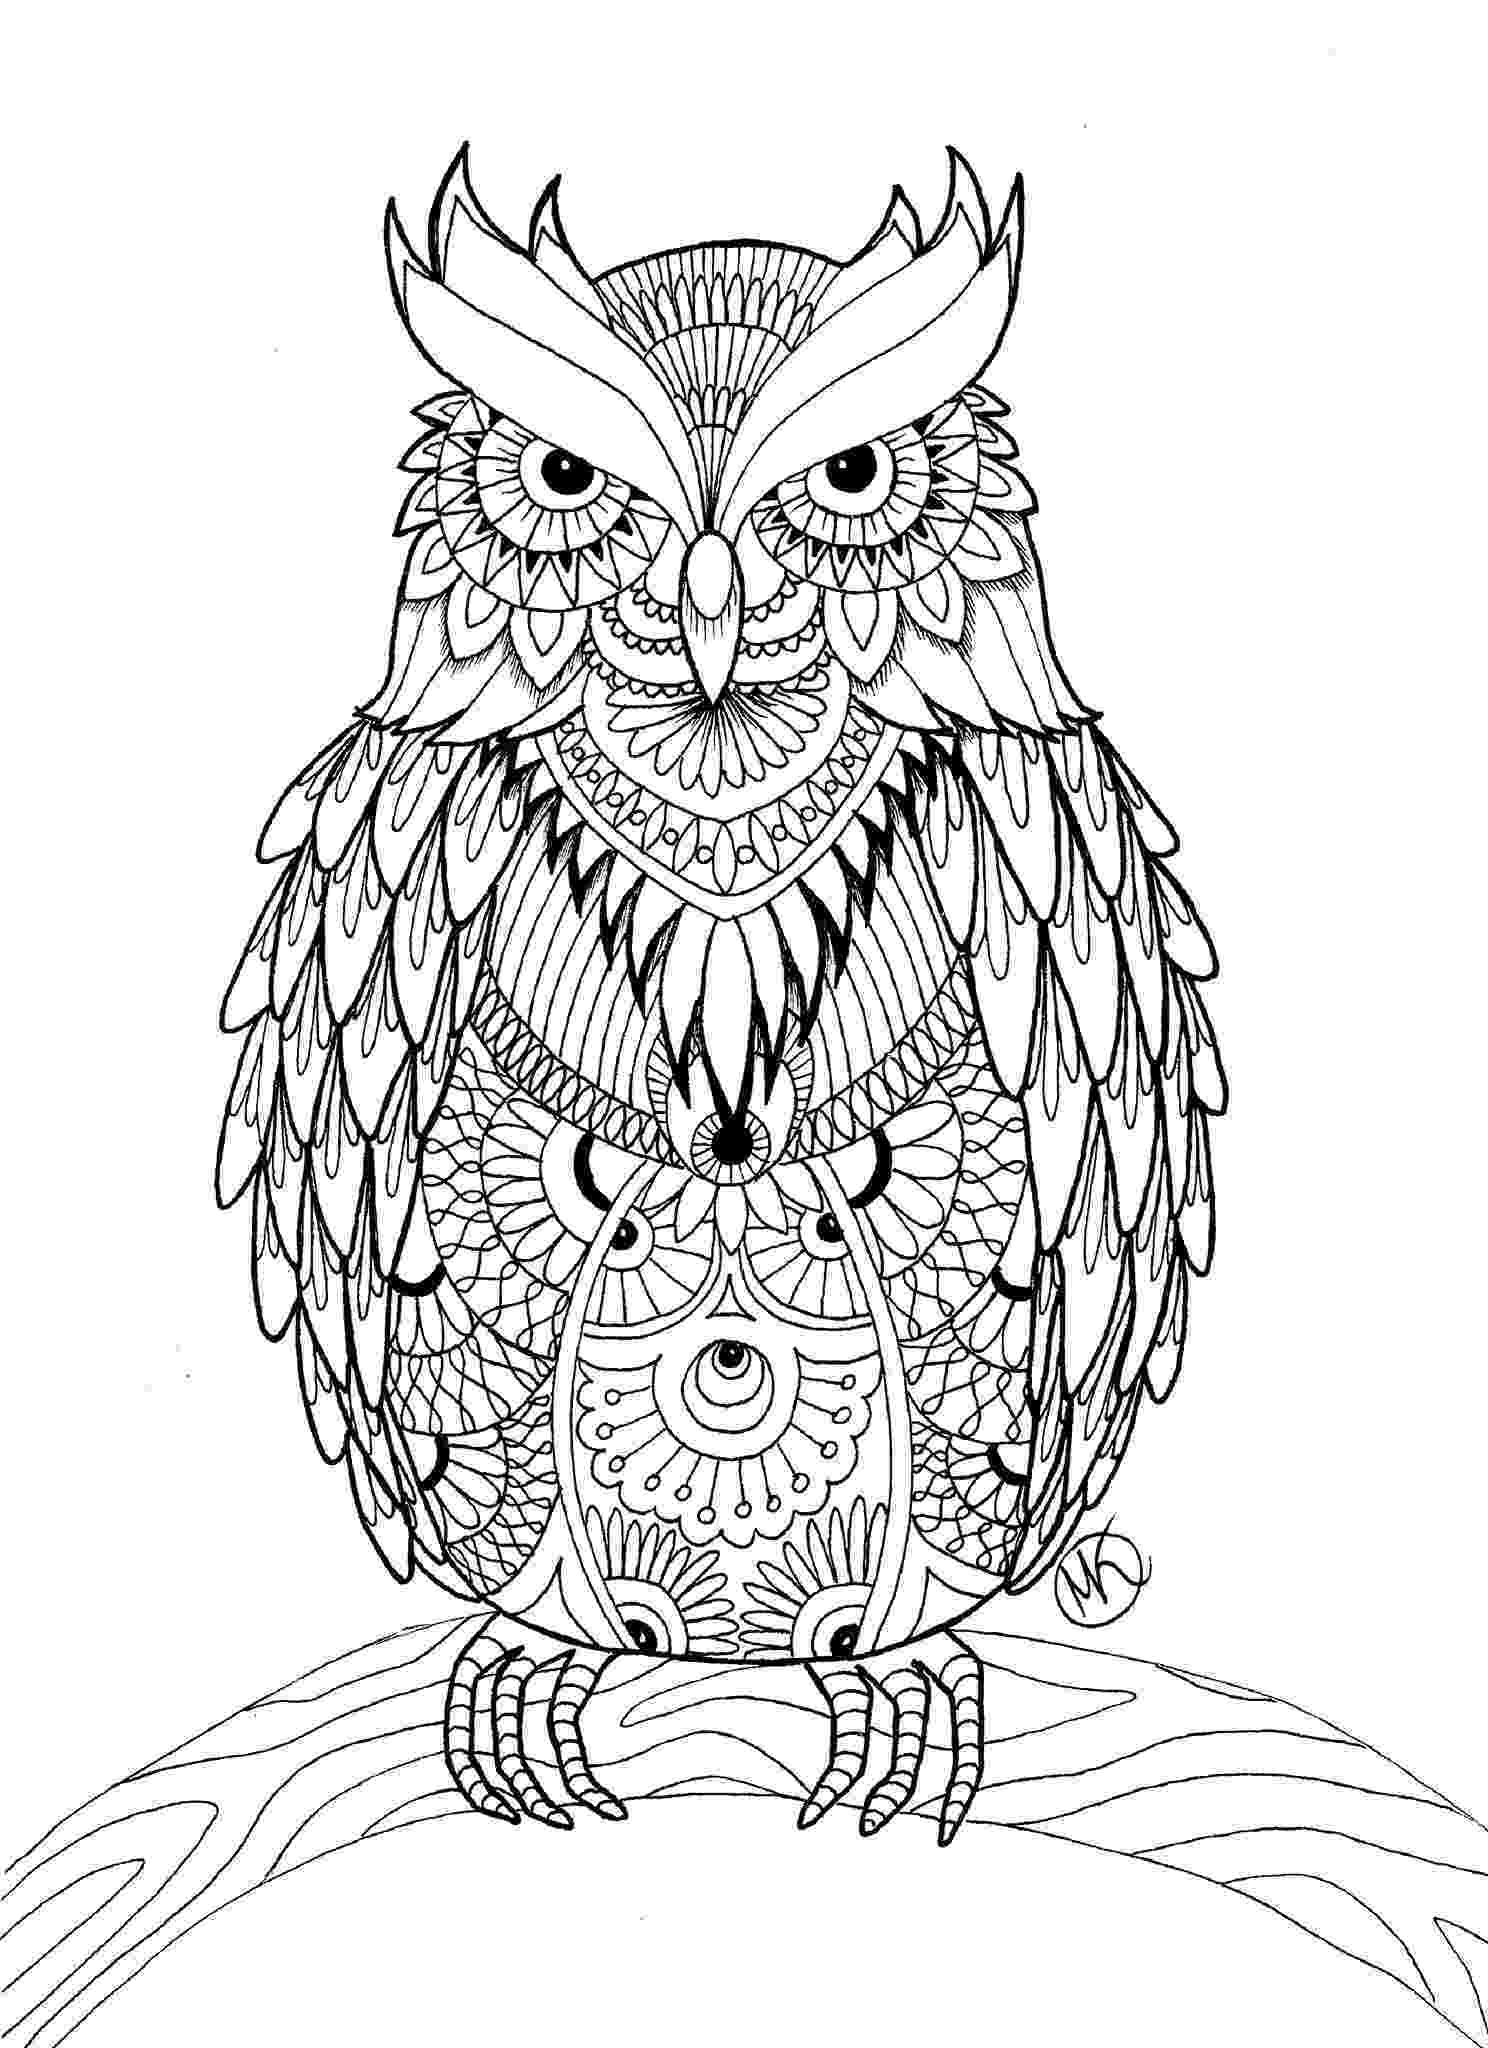 coloring pages for adults with owls de 25 bedste idéer inden for owl coloring pages på with adults owls for pages coloring